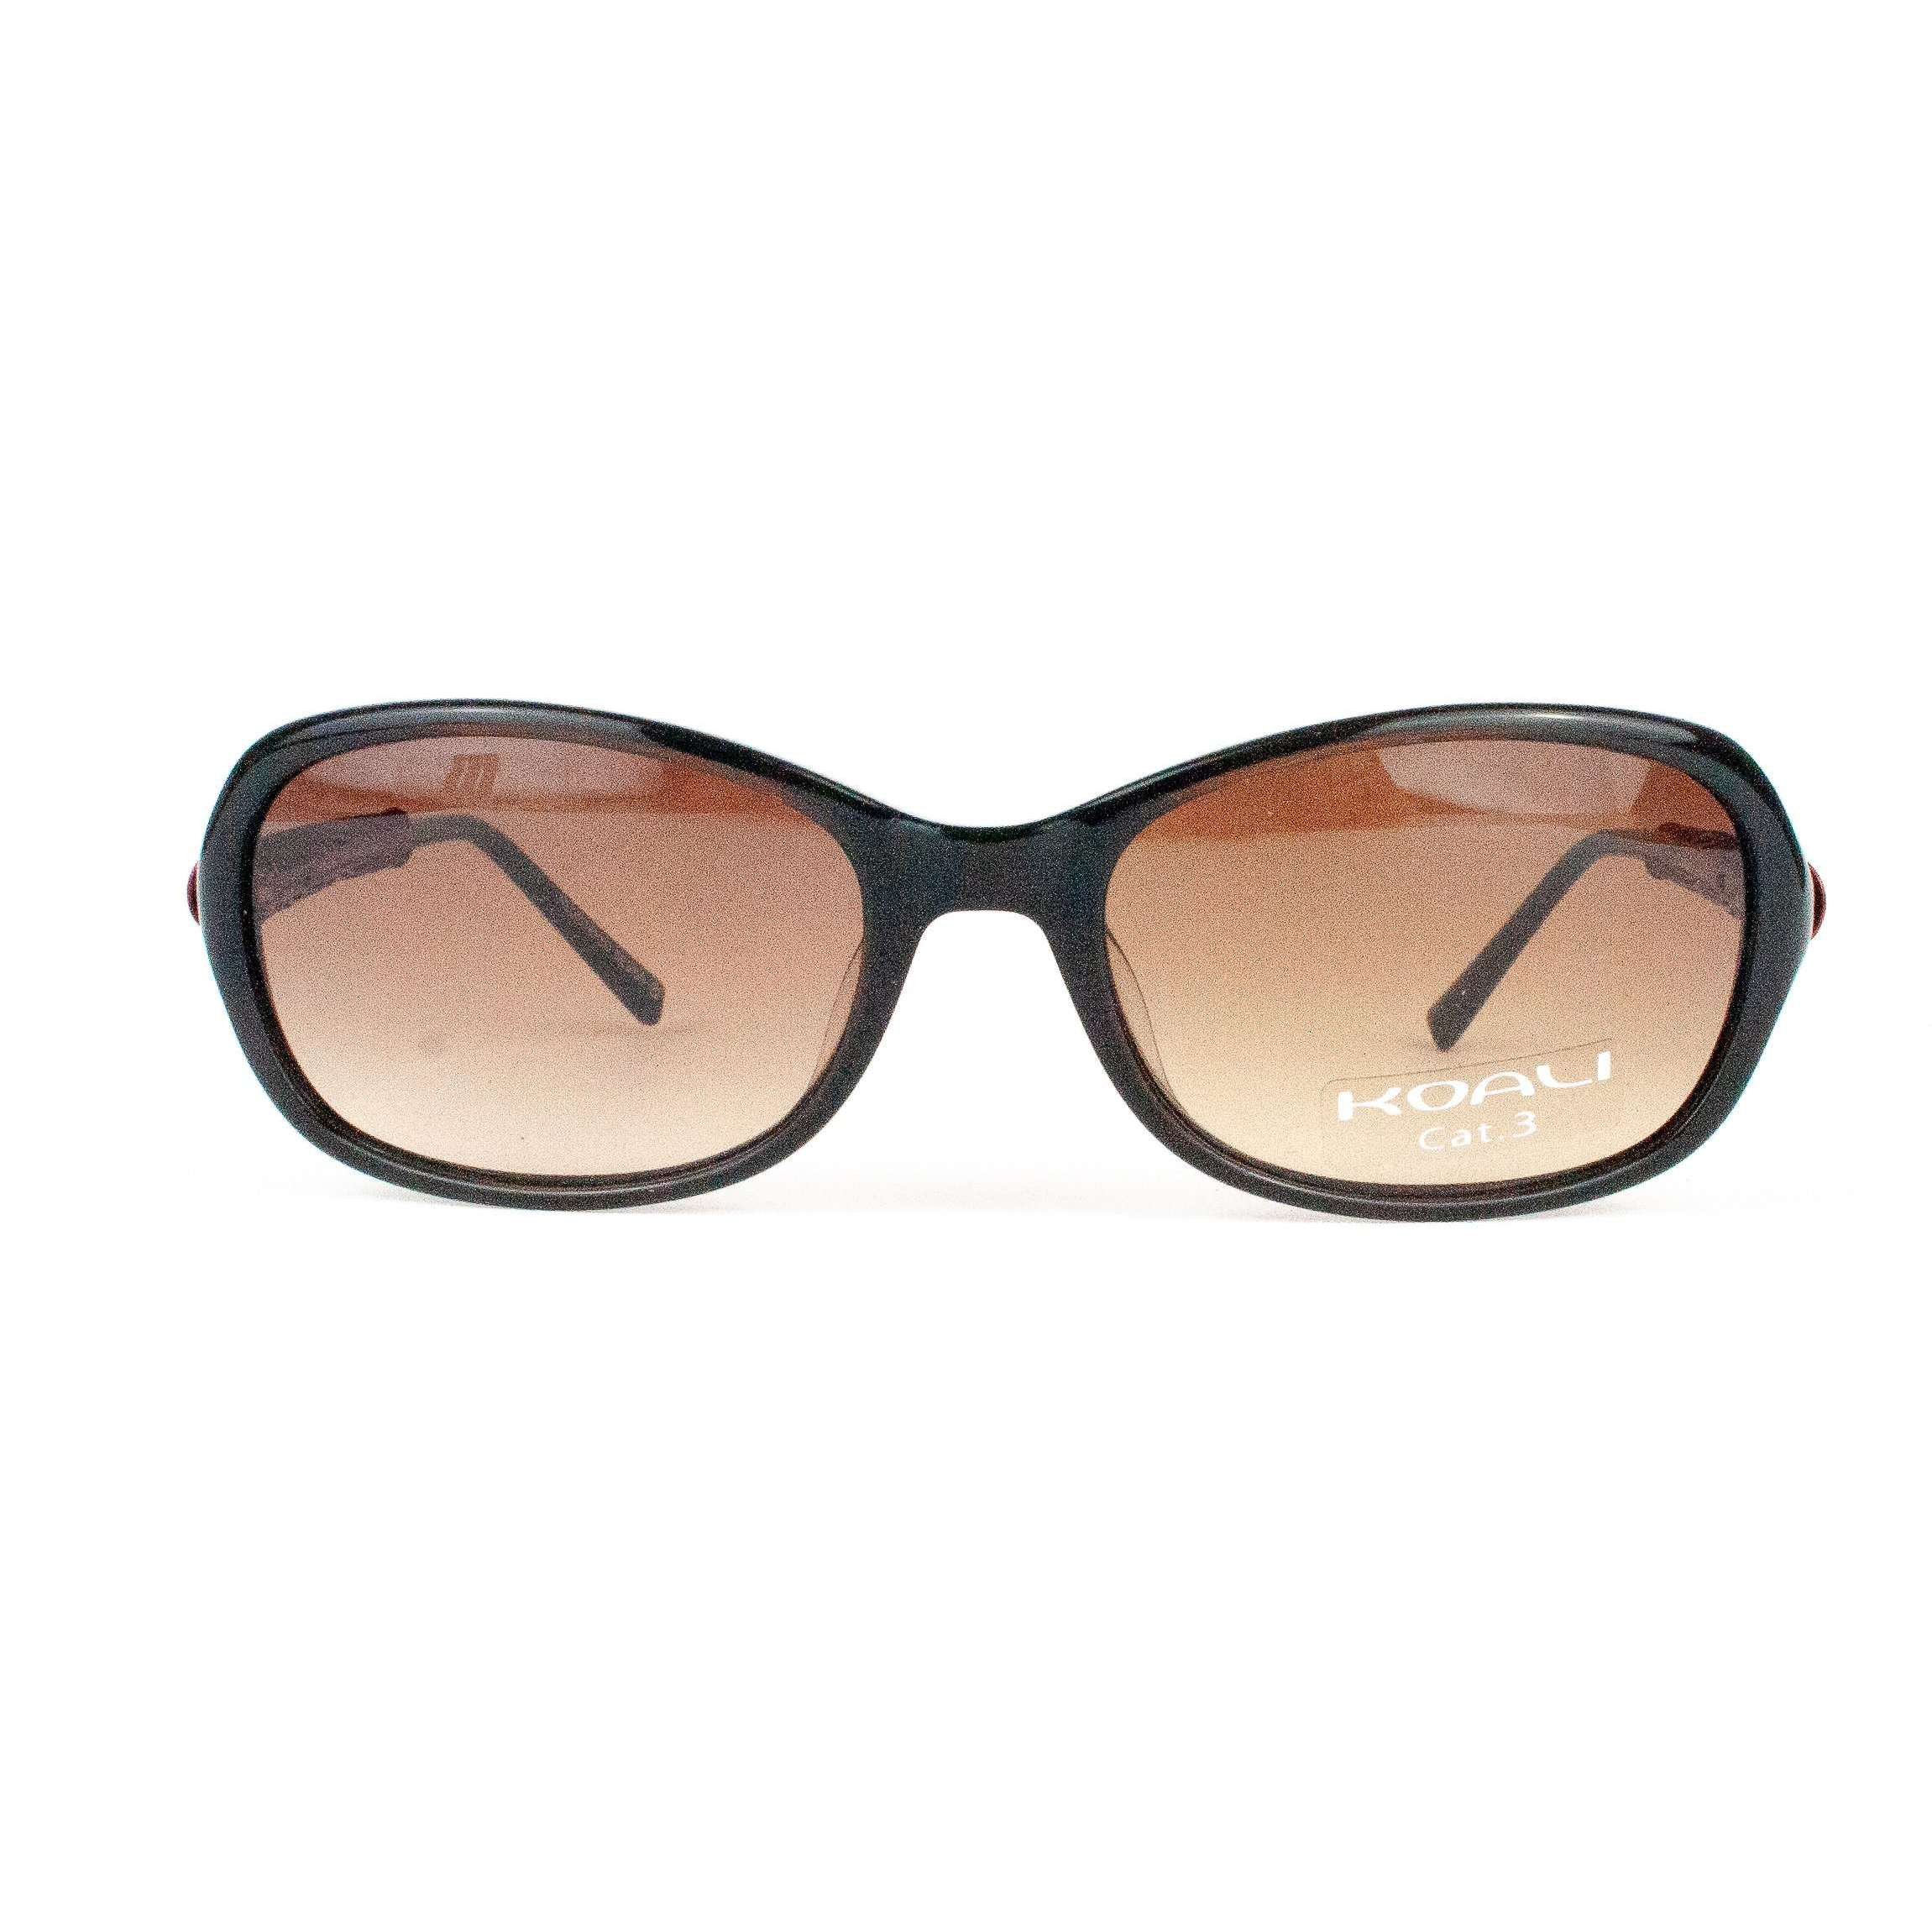 Koali Morel Model 7106K Oval  Sunglasses